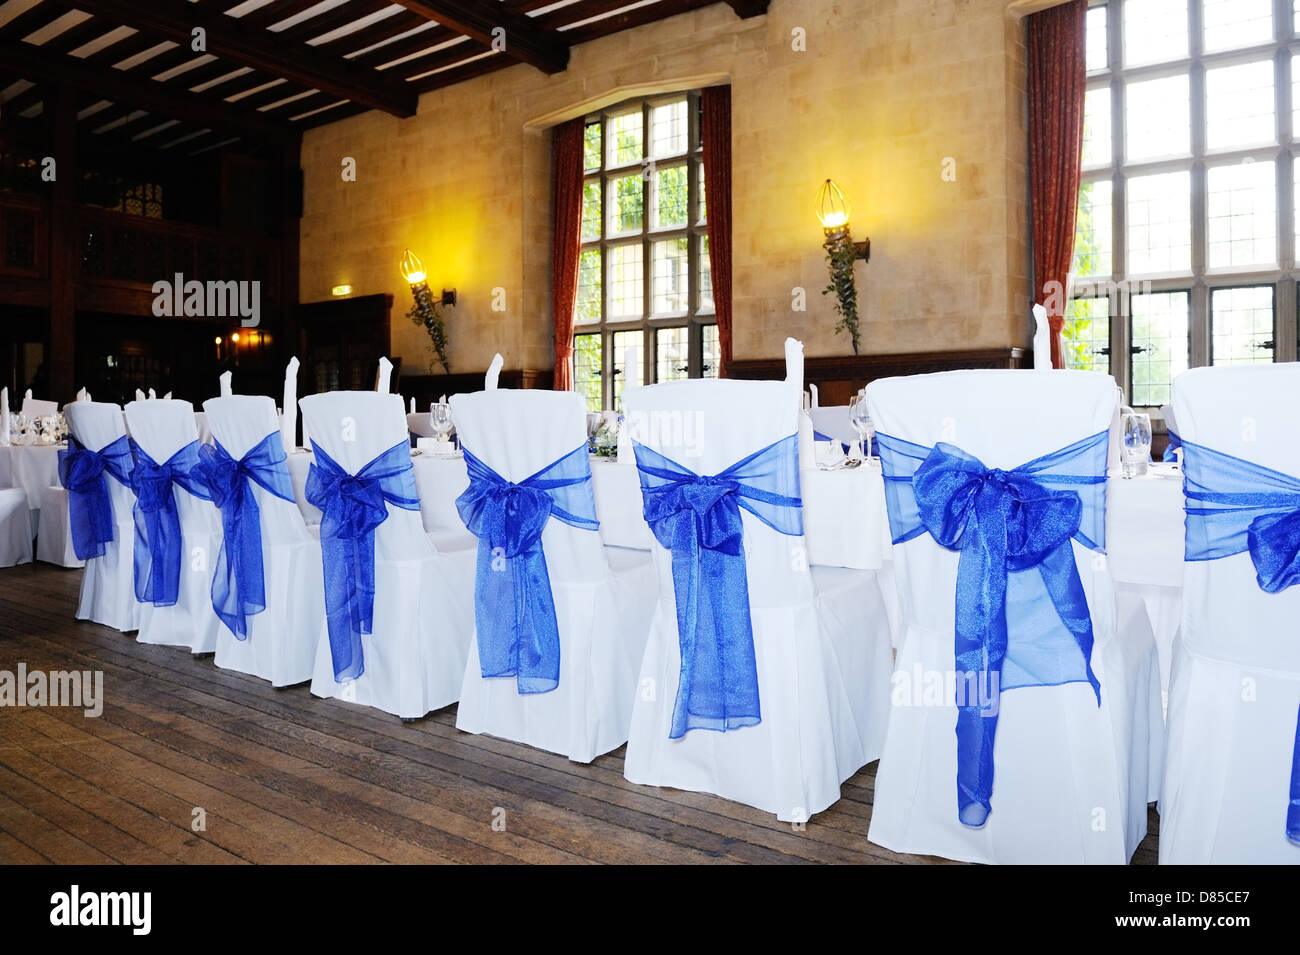 Blue And White Chair Covers At Wedding Reception Stock Photo